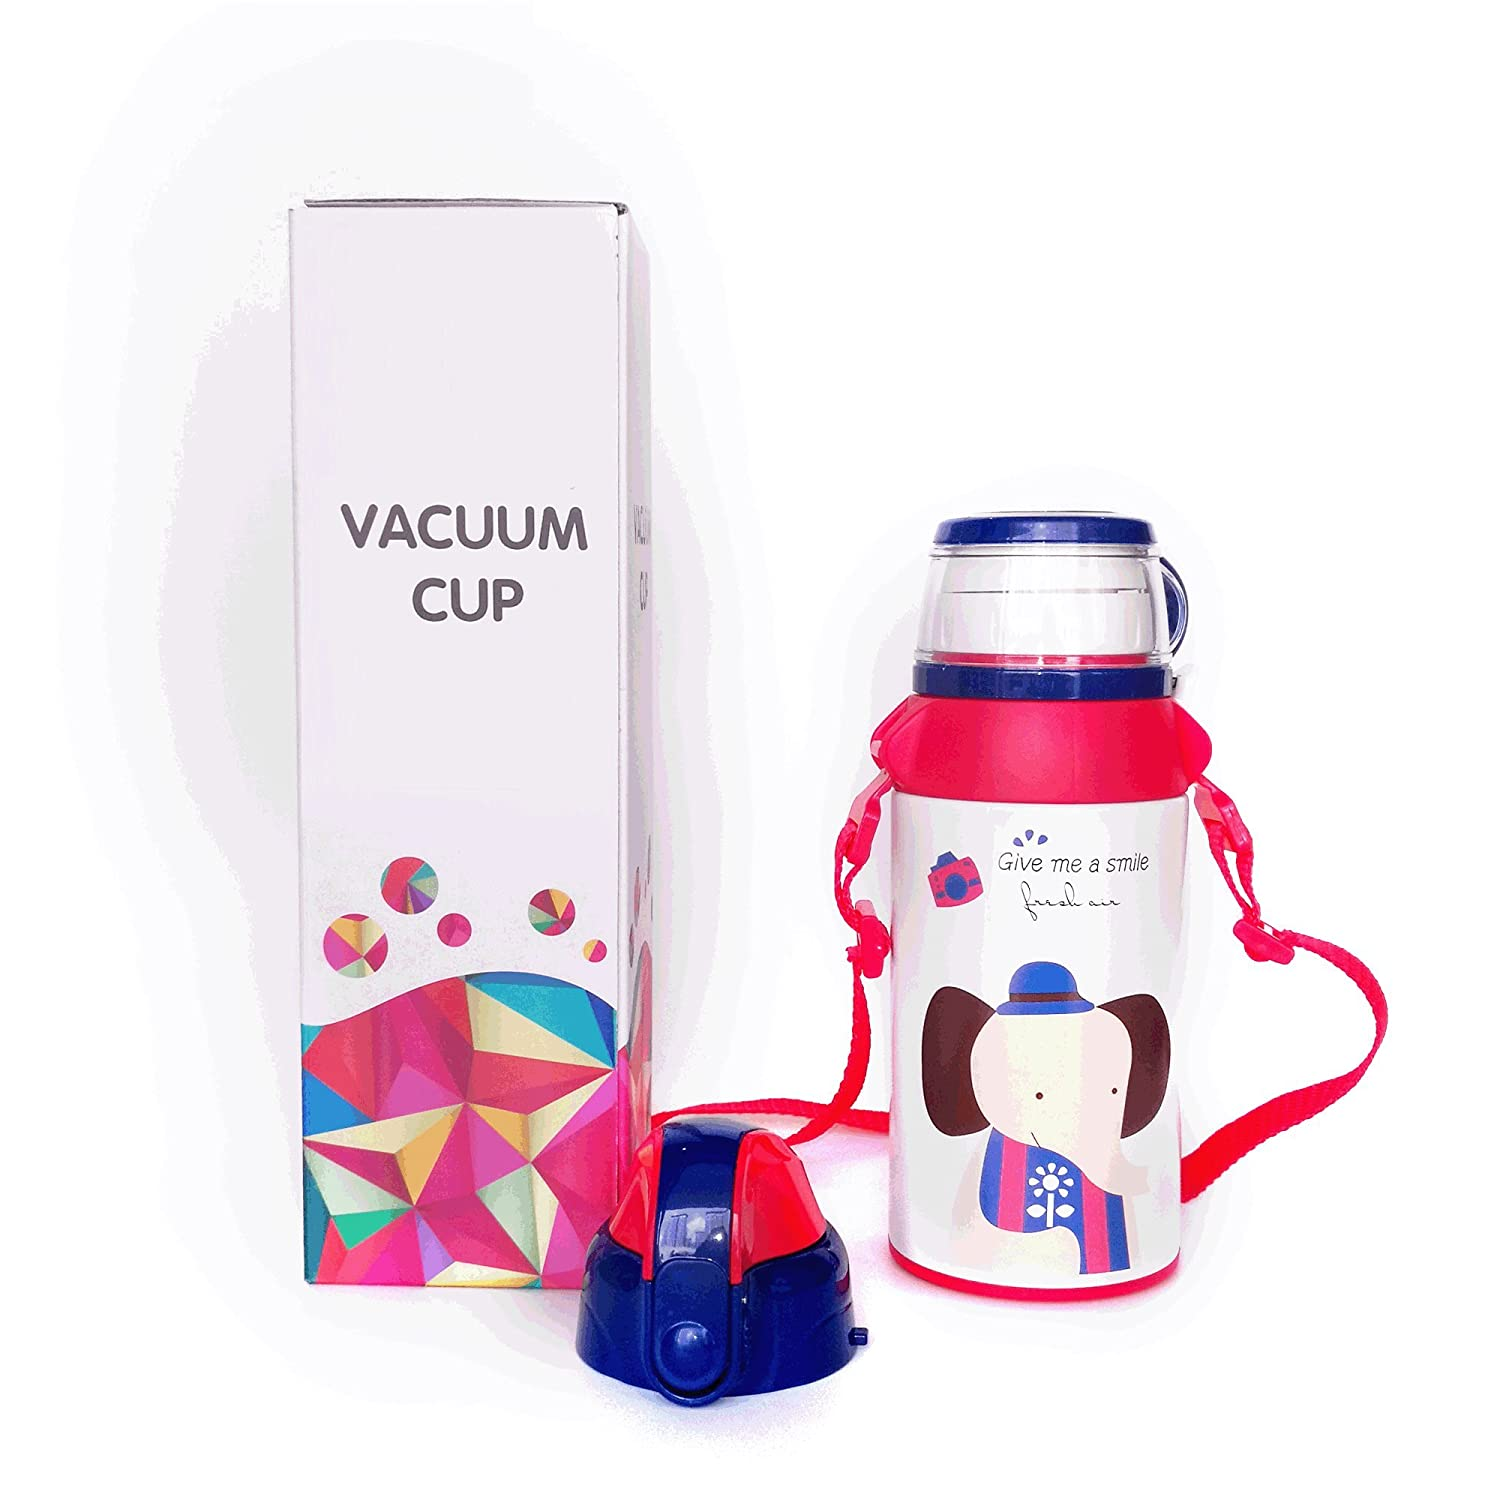 GALLERY-2 in1 Outdoor Water Bottle for kids Bulk School Stainless Steel Bottle Kitchen is Easy to Carry Cups Straw (Red)